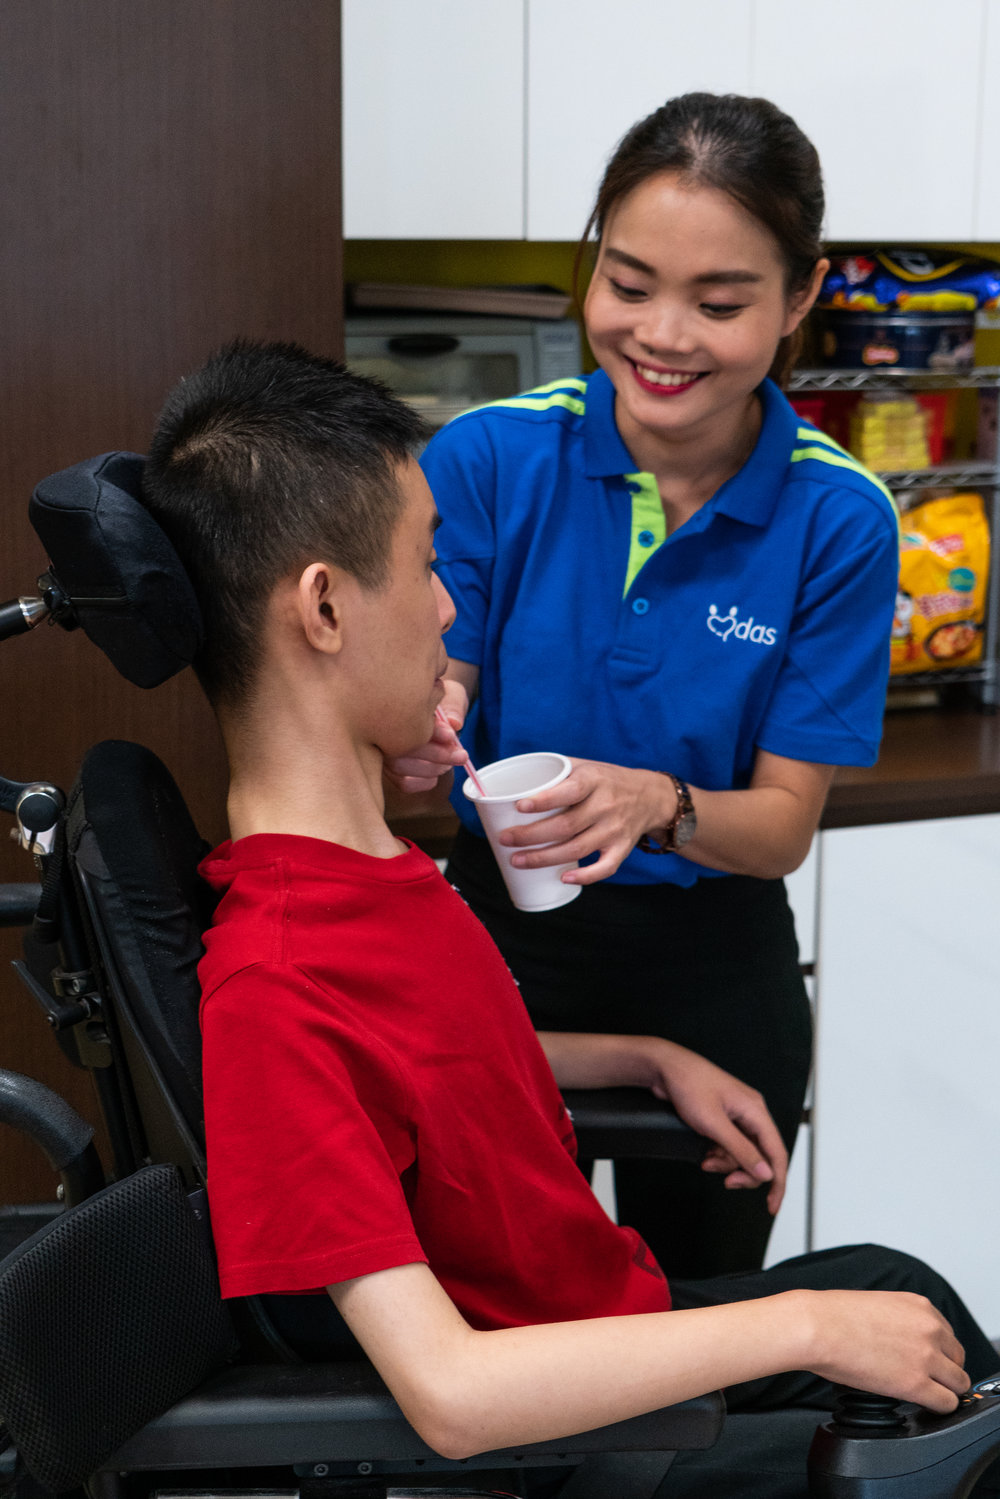 muscular_dystrophy_association_singapore_mdas_therapy_respite